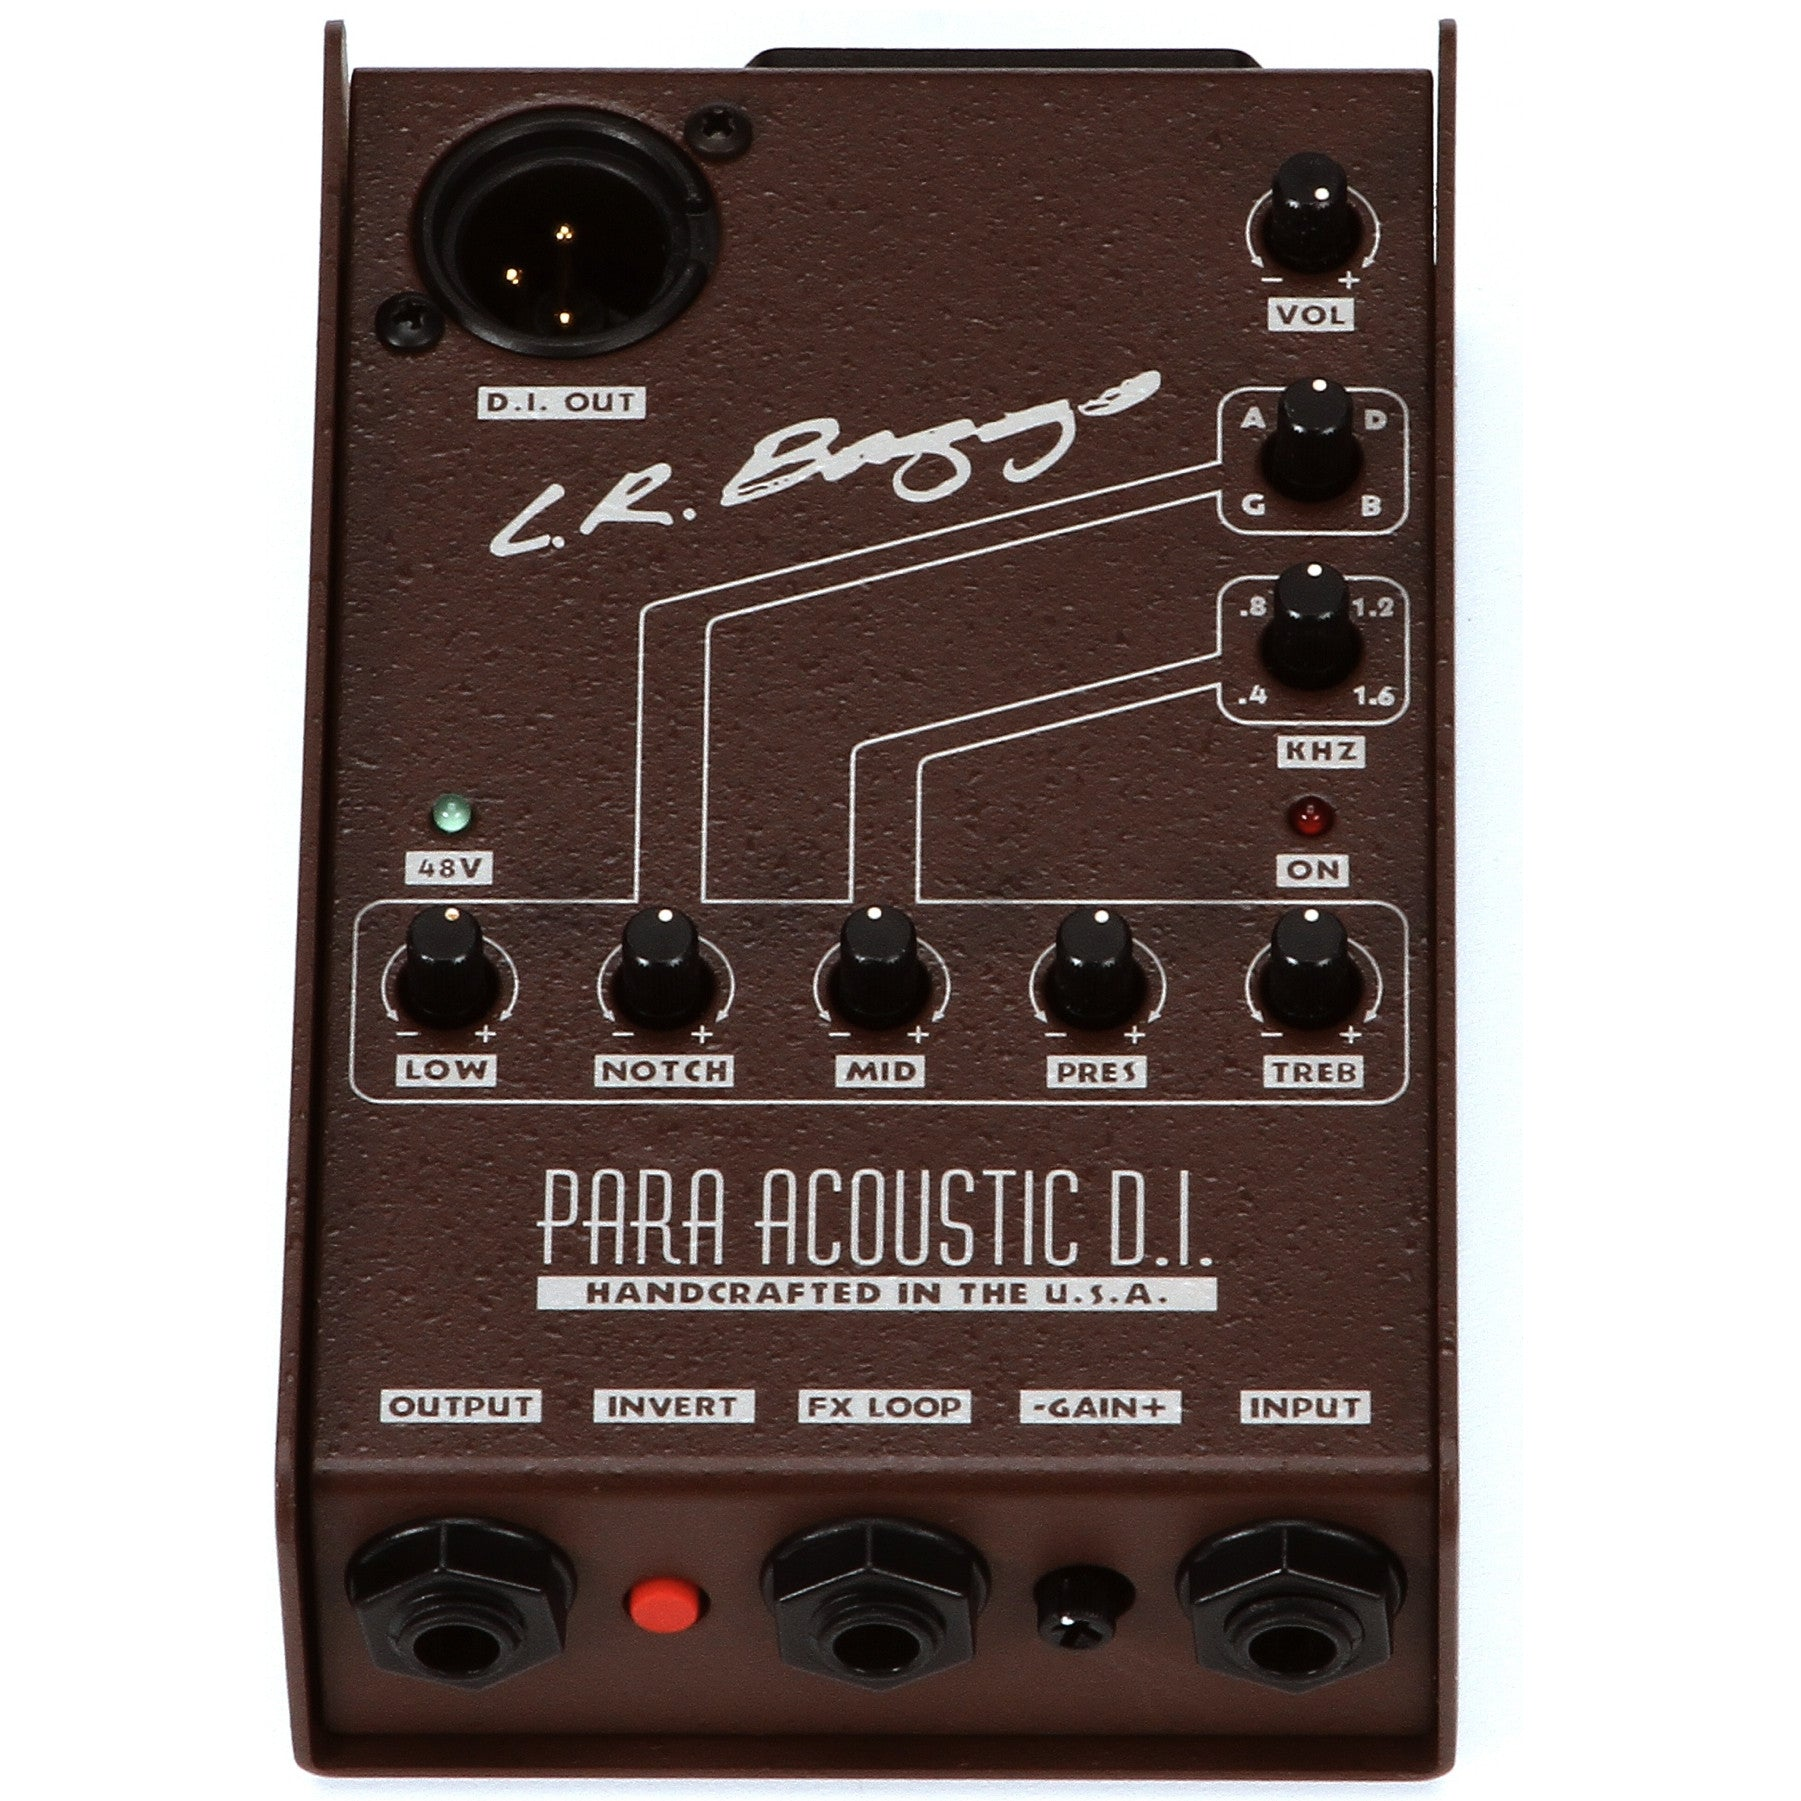 LR Baggs Para DI 5-Band EQ and Direct Box